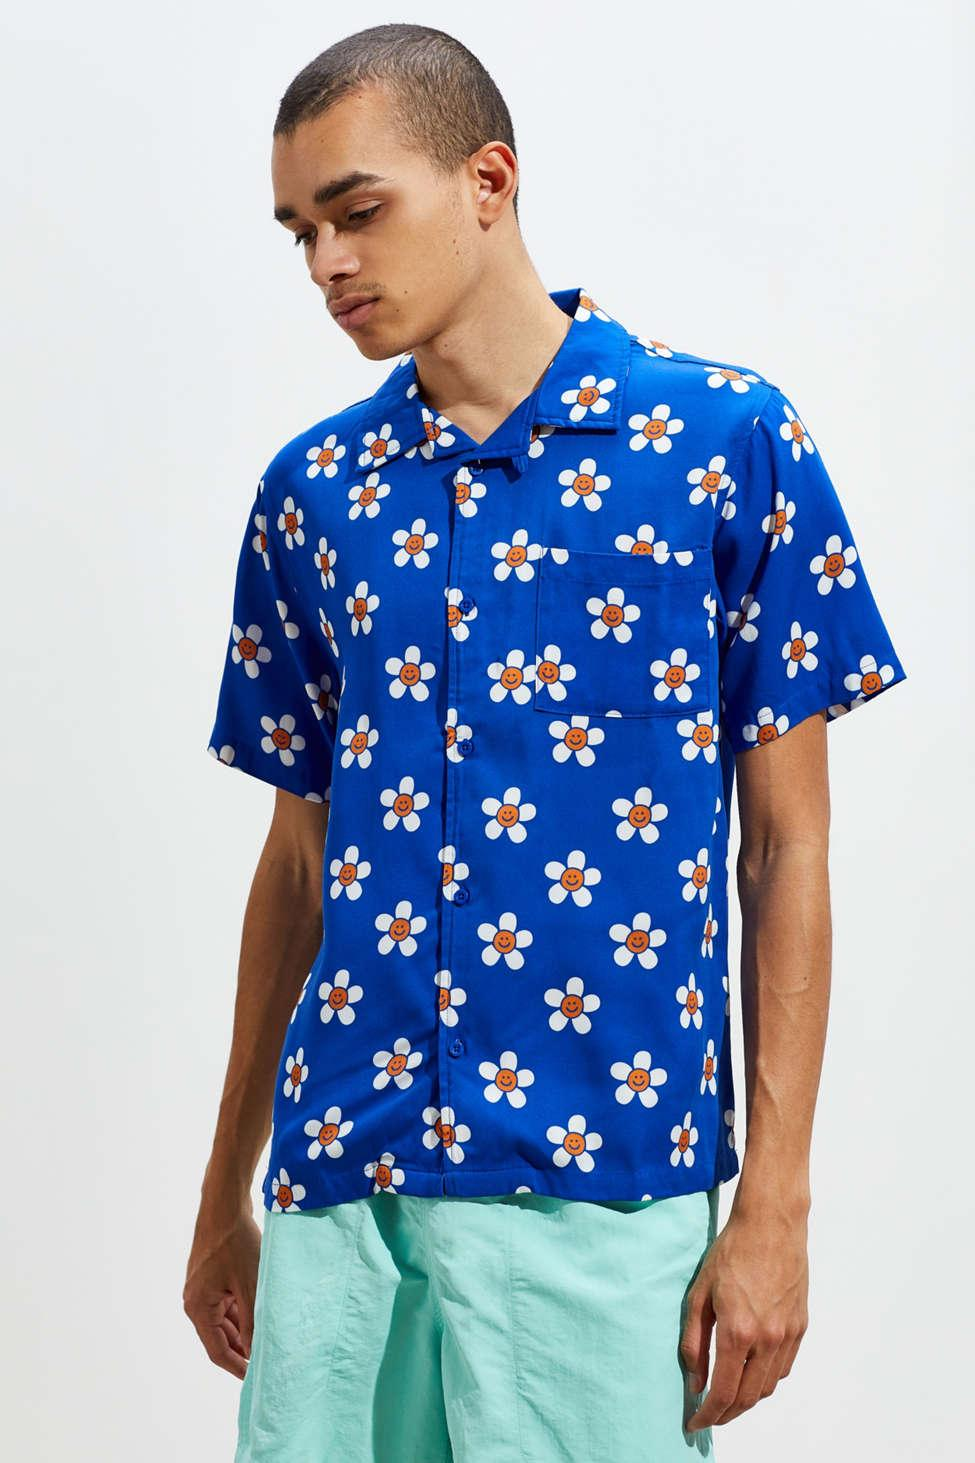 2ca4d00d Lazy Oaf Happy Flowers Blue Short-sleeve Shirt - Mens Xl in Blue for ...